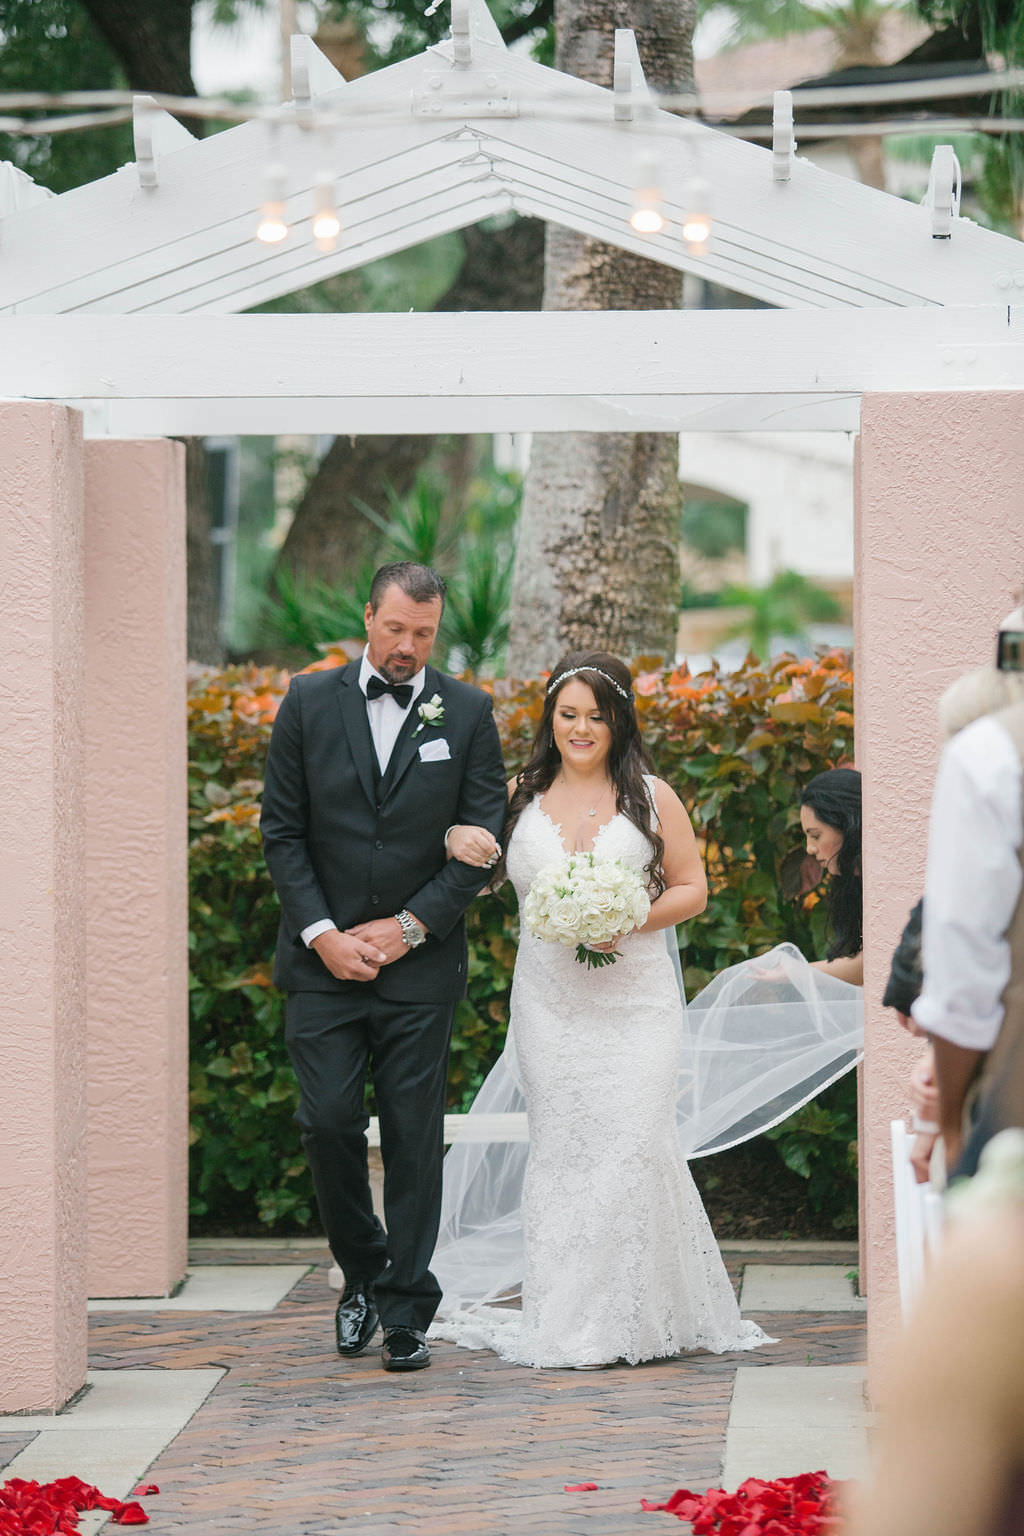 Romantic Bride Walking Down the Wedding Ceremony Aisle in Lace Wedding Dress Holding White Floral Bouquet   Tampa Bay Wedding Florist Bruce Wayne Florals